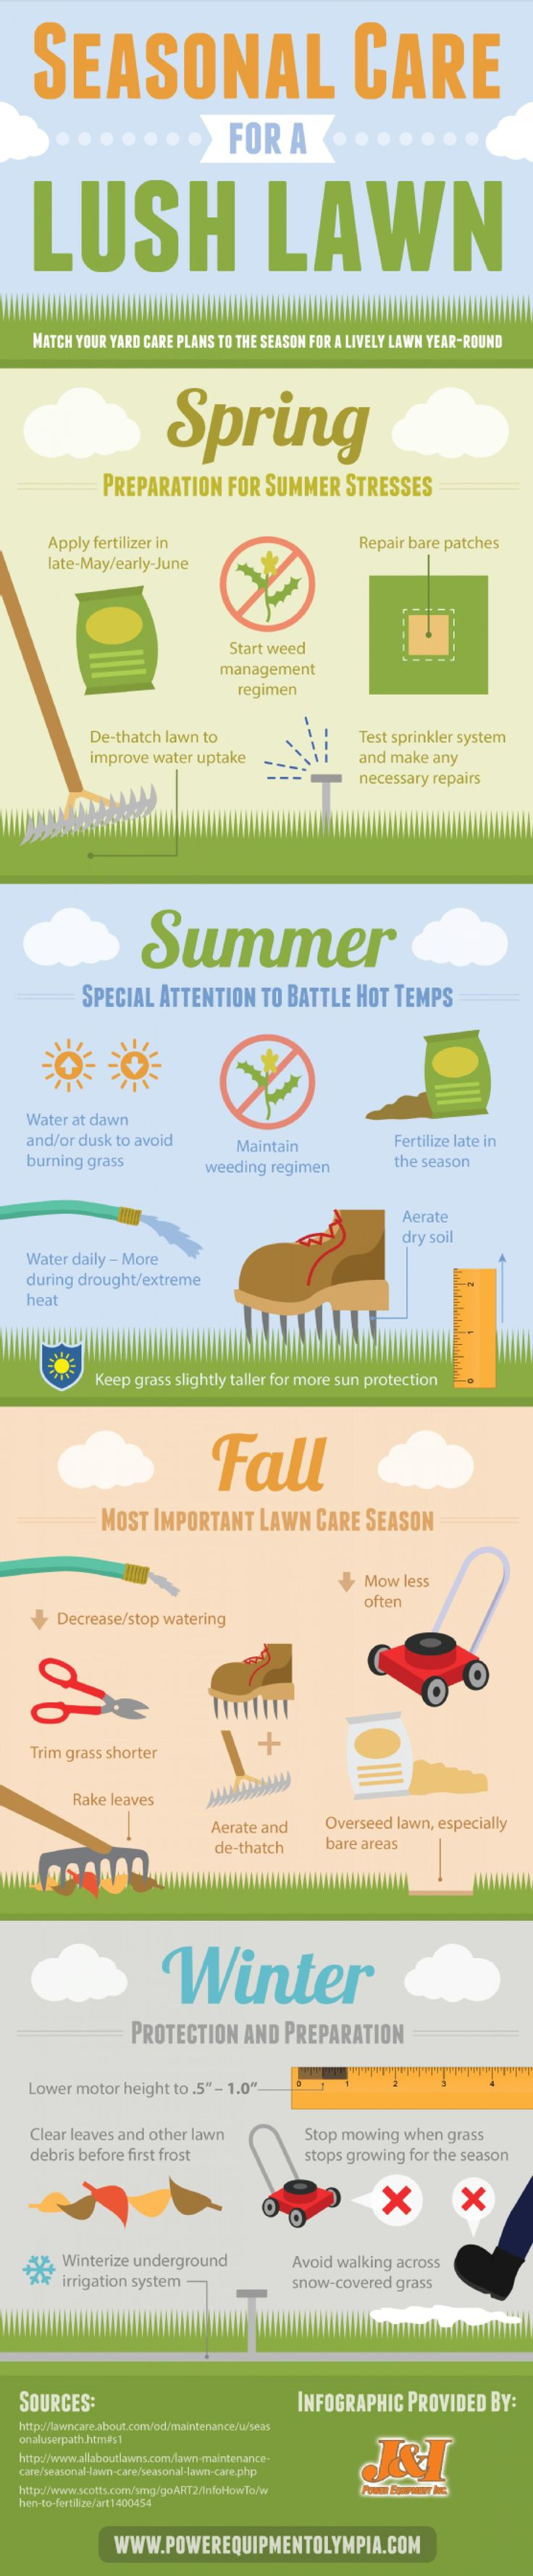 Seasonal Care for a Lush Lawn (Info-Graphic)  Just a few basic steps and you can have a lush, healthy lawn year round. Learn more in this lawn care info-graphic.